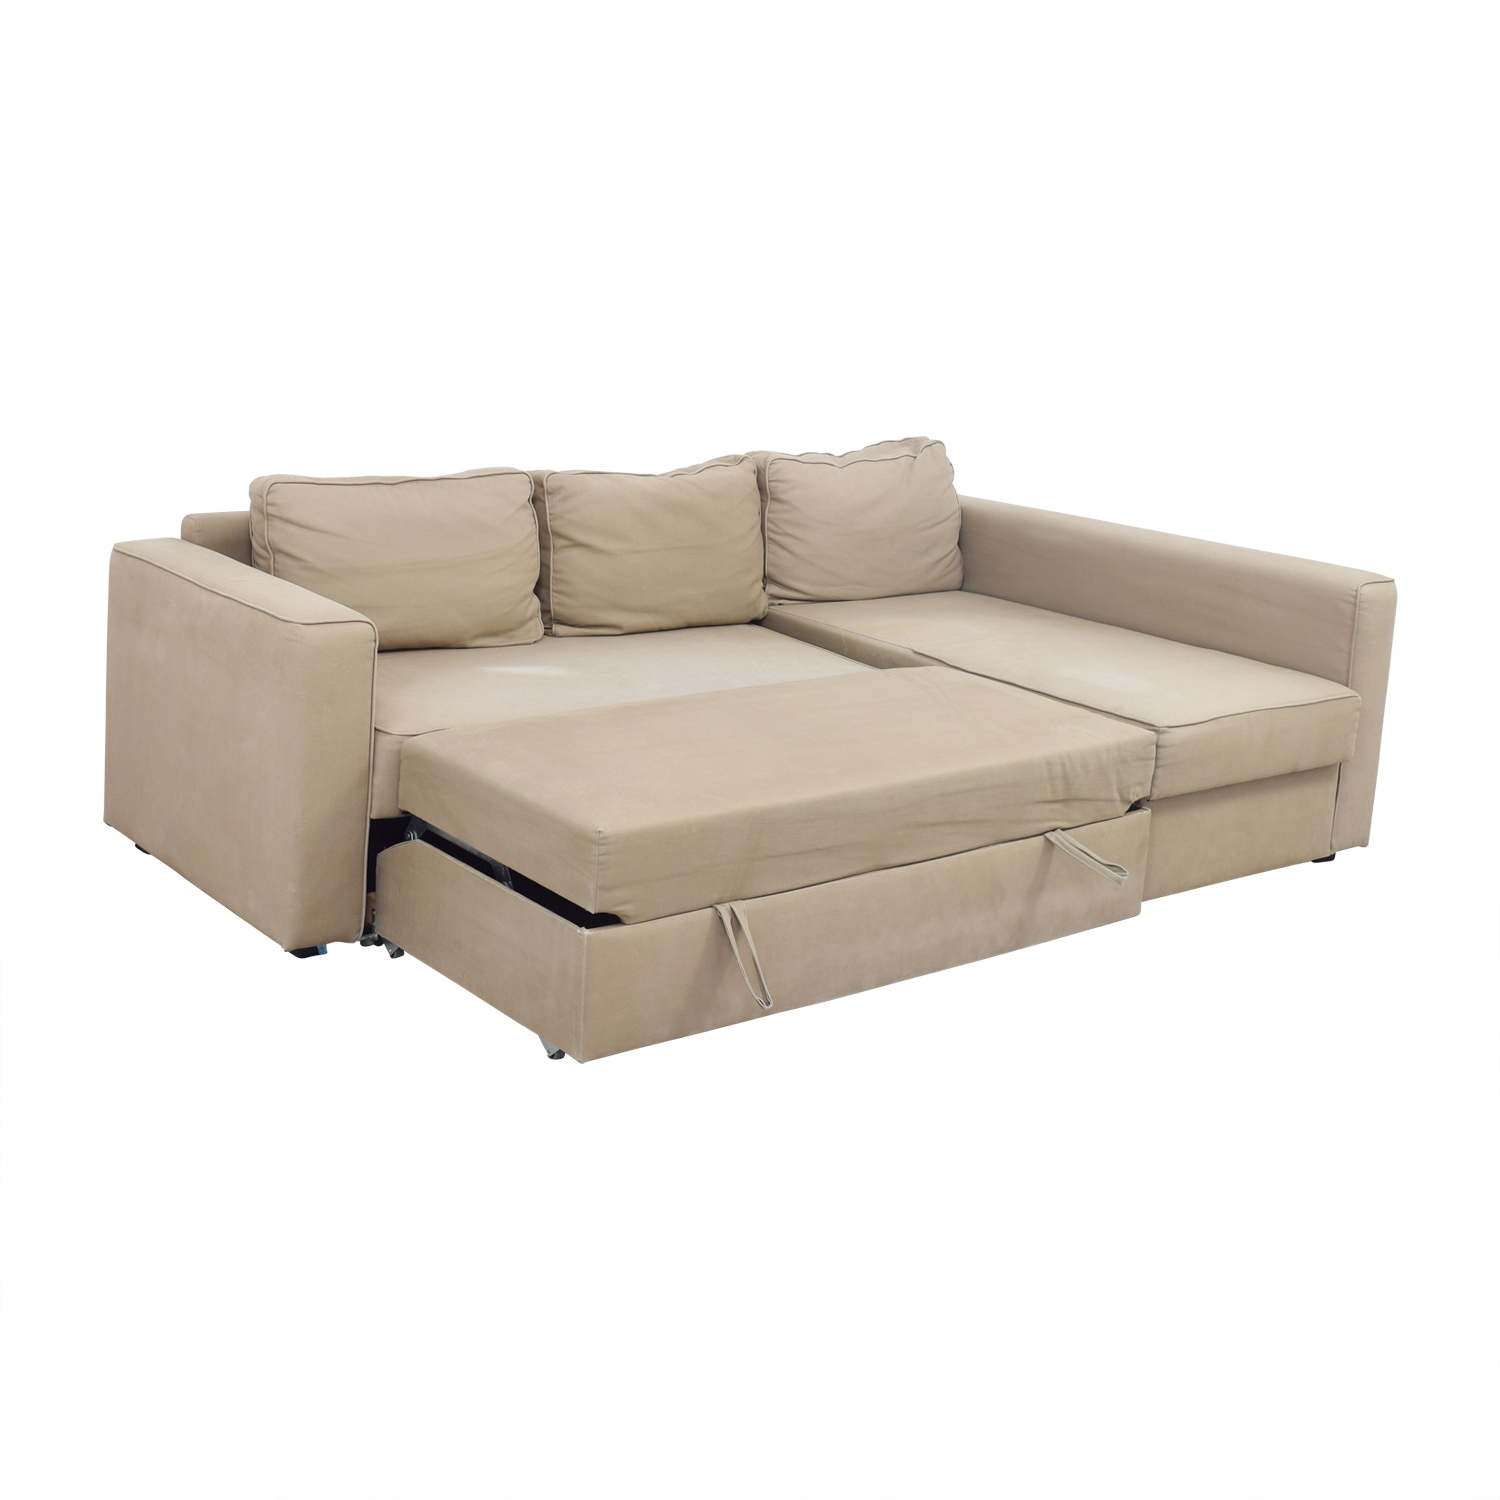 Sofa Bed Ikea 62 Off Ikea Ikea Manstad Sectional Sofa Bed With Storage Sofas